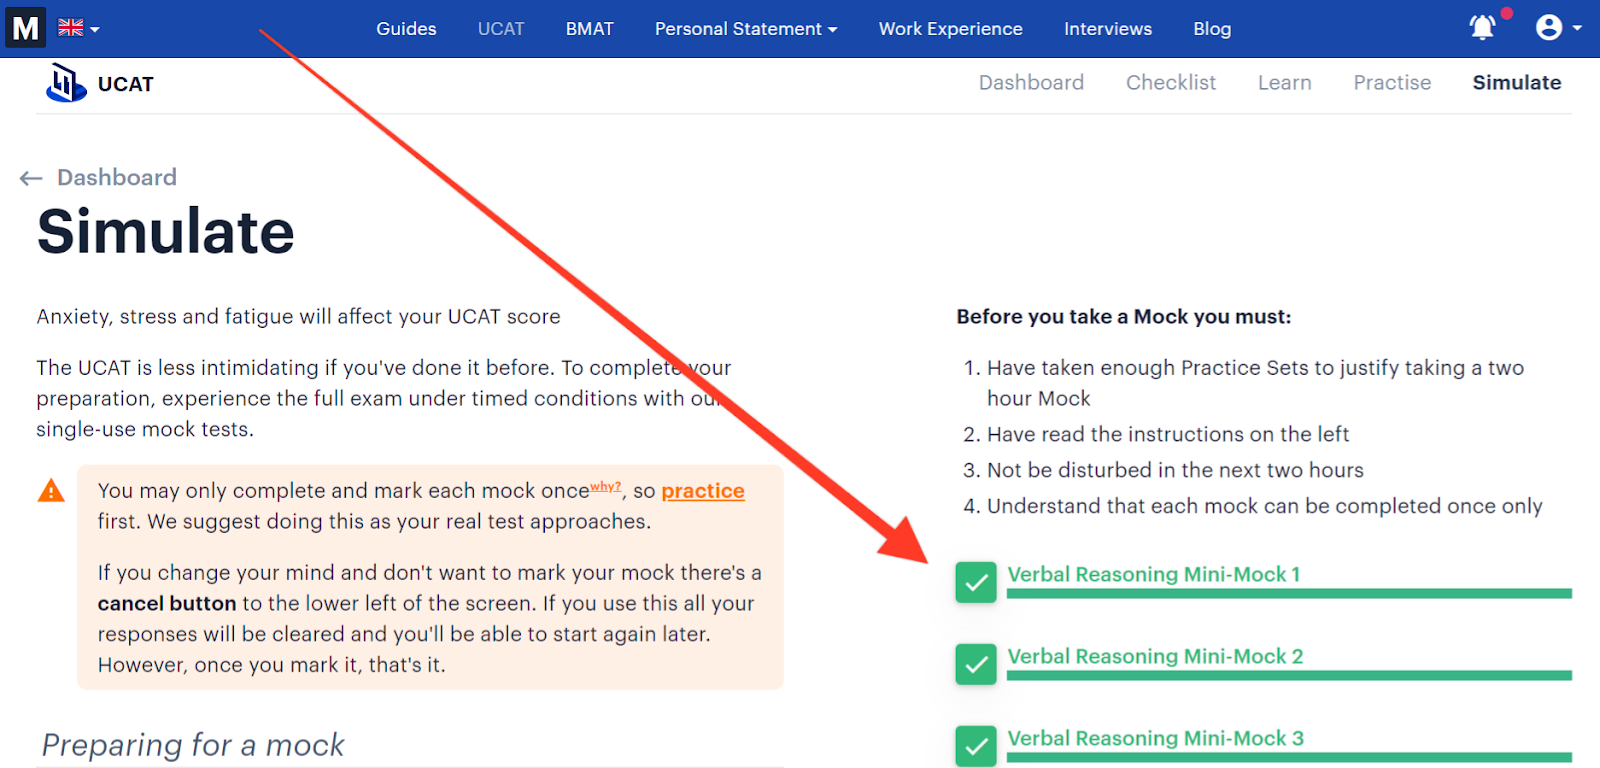 Screenshot of Medify's UCAT course with a red arrow pointing towards the mini-mocks.